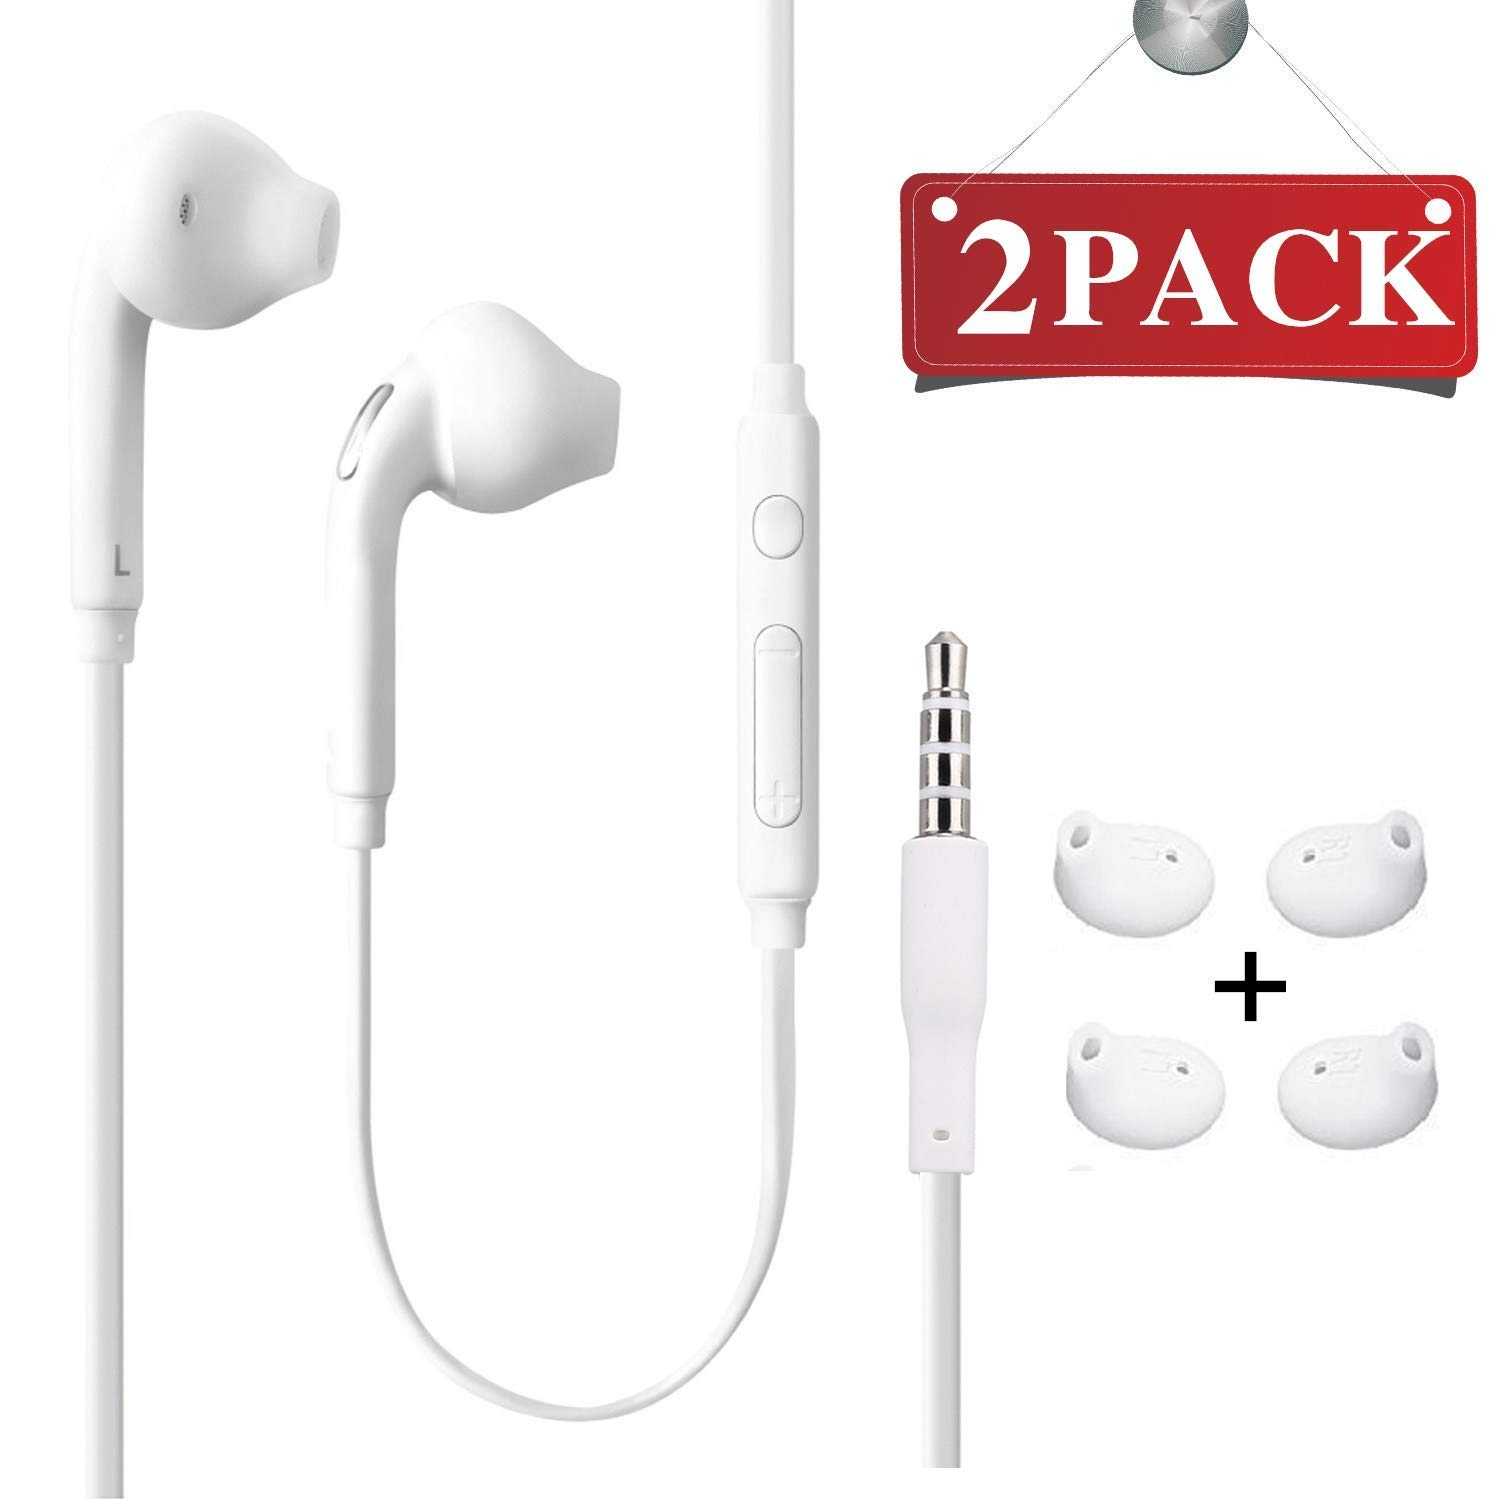 Sobrilli 3.5mm Wired in-Ear Headphones with Mic and Remote Control for Samsung Galaxy S9 S8 S7 S6 S5 S4 Edge Note 4 5 6 7 8 9 and More Android Devices 2 Pack Aux Headphones//Earphones//Earbuds,